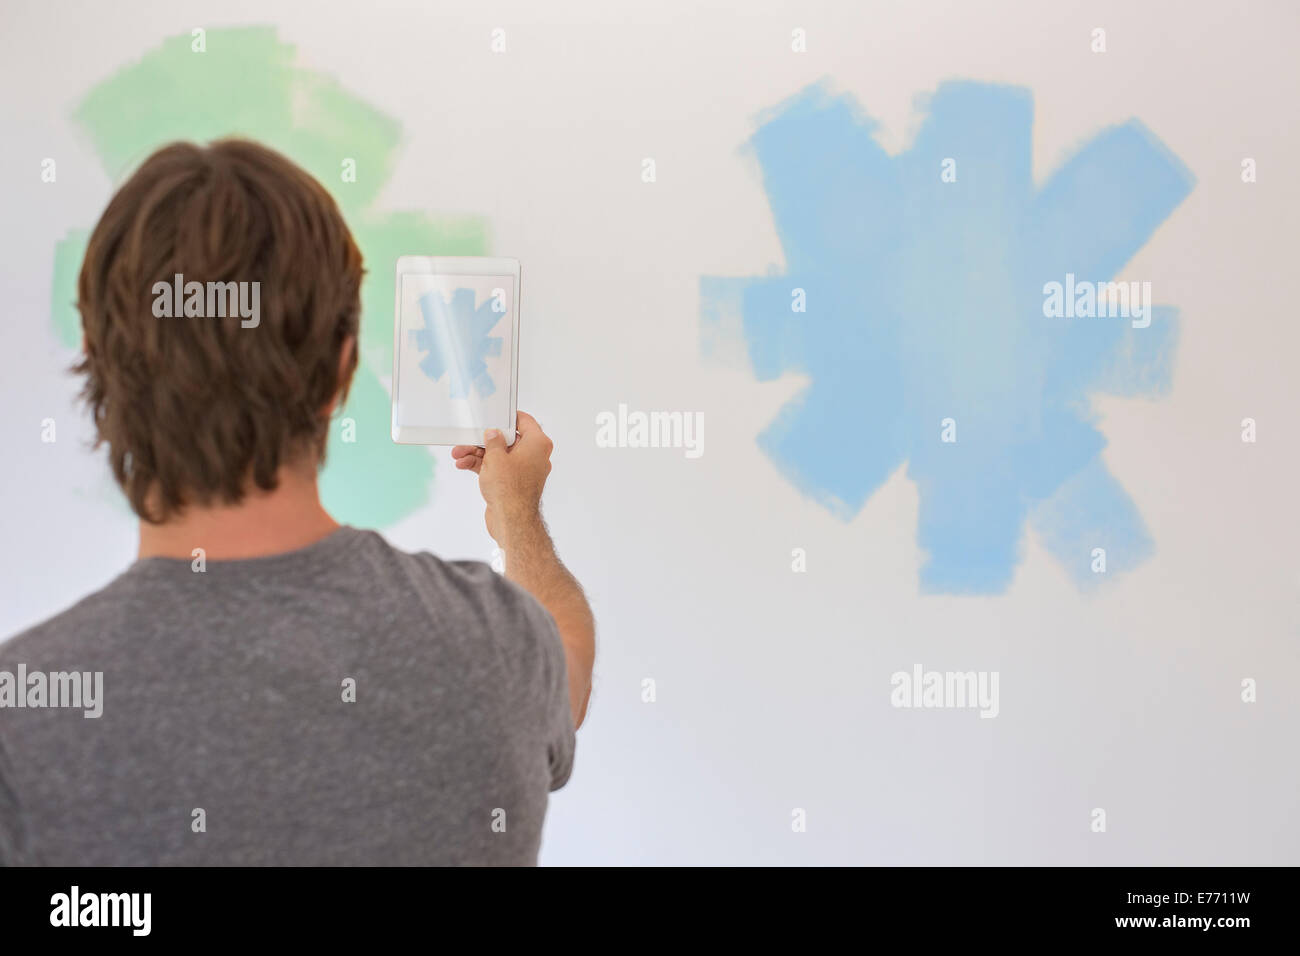 Man taking photo of wall with digital tablet - Stock Image